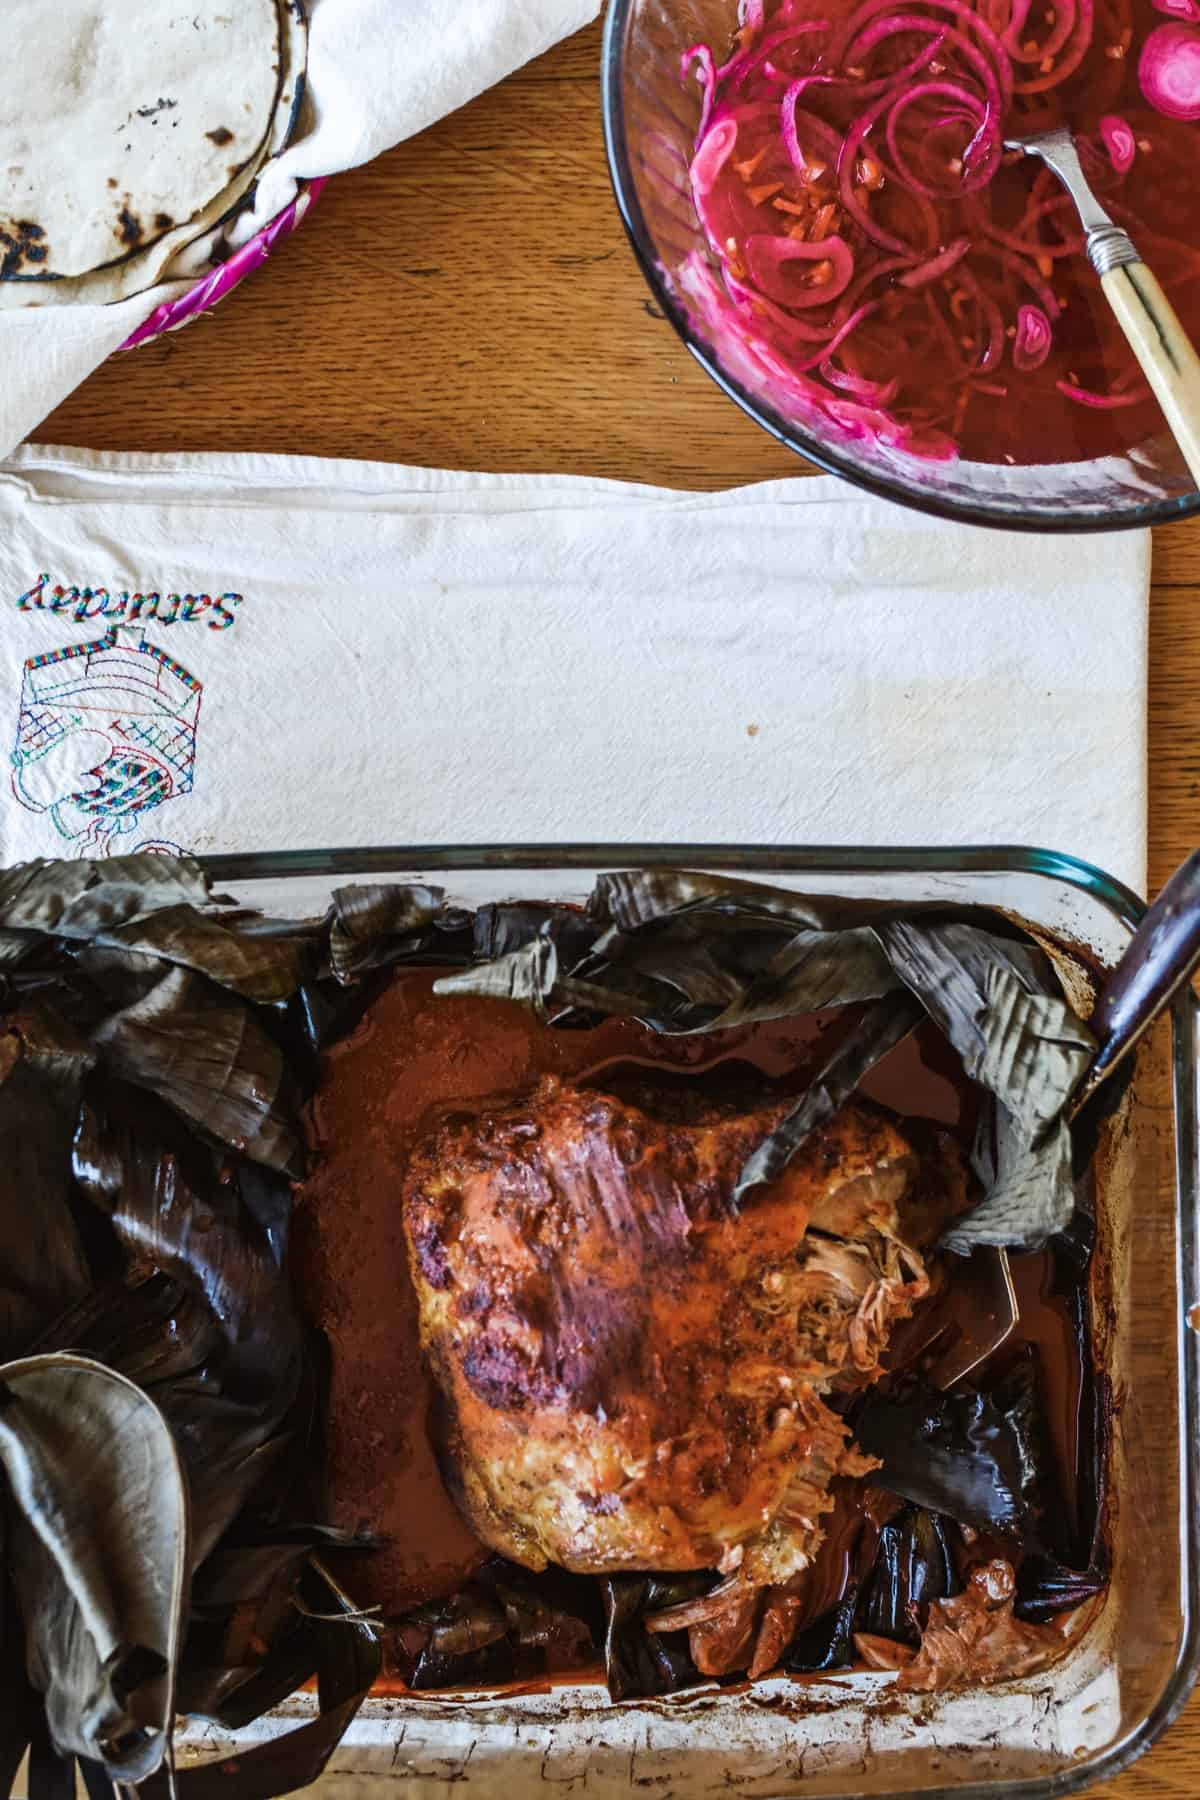 Cochinita Pibil in a baking dish with pickled red onions on a white kitchen towel.